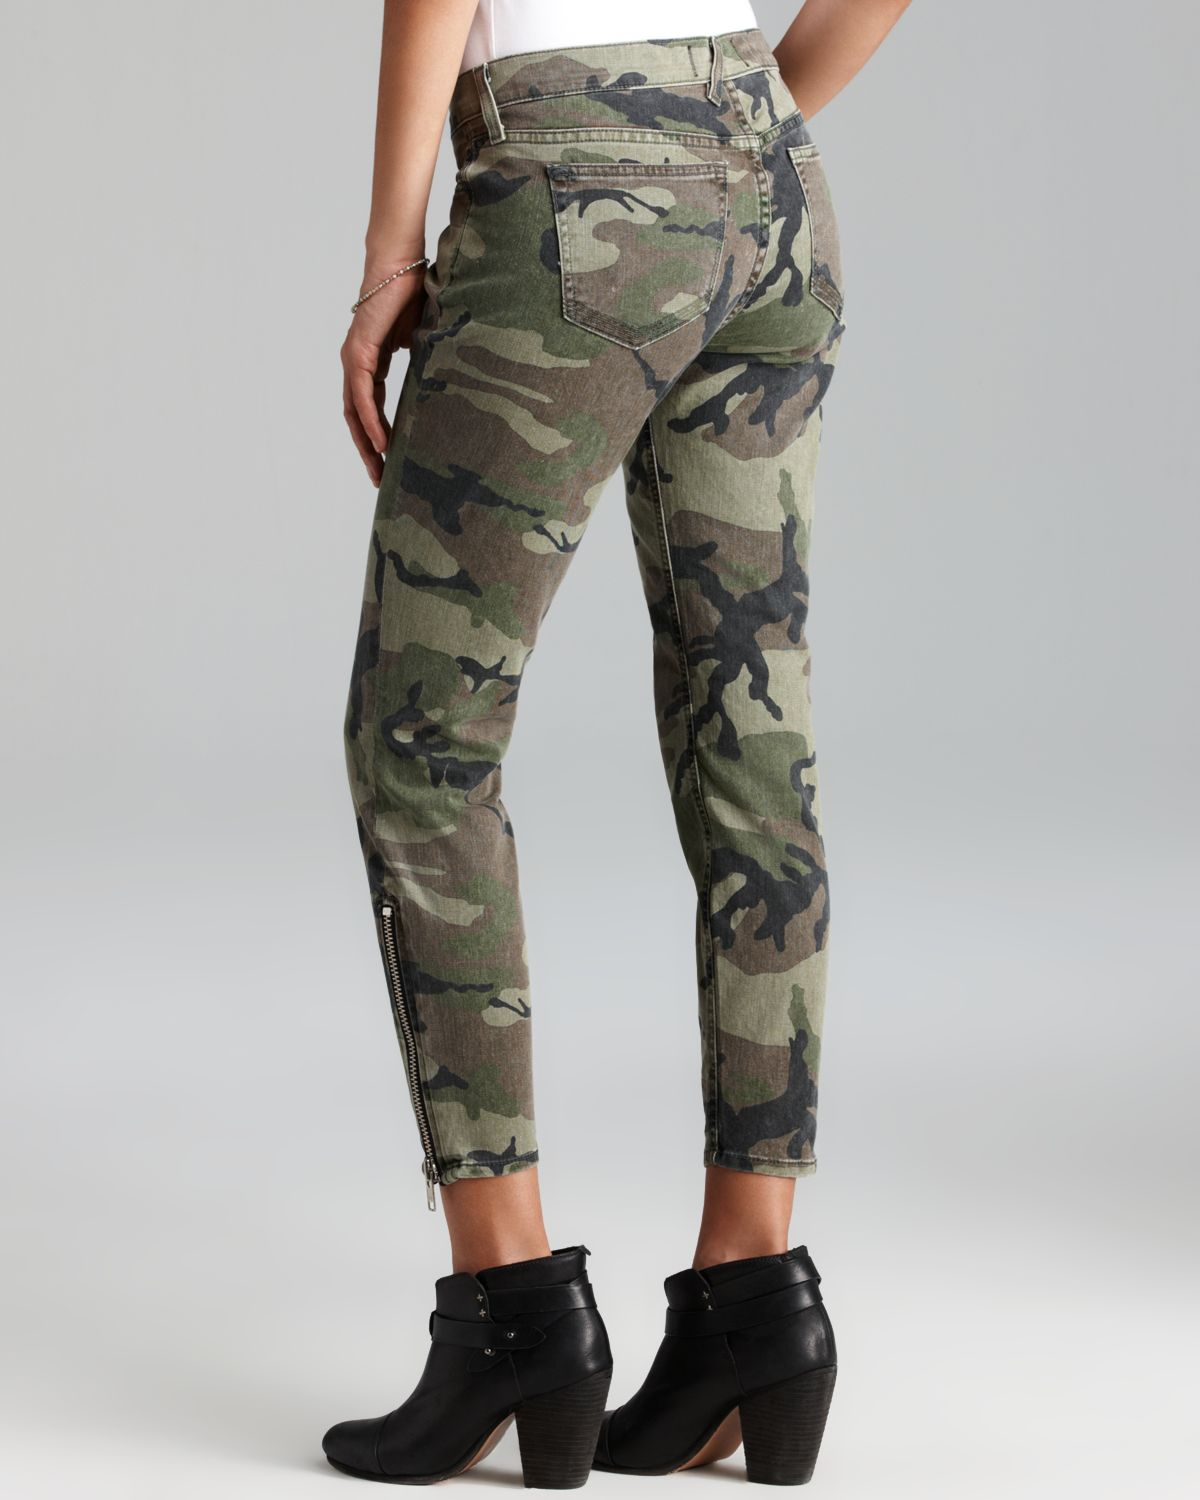 Textile elizabeth and james Jeans Cooper Skinny in Olive Camo in ...